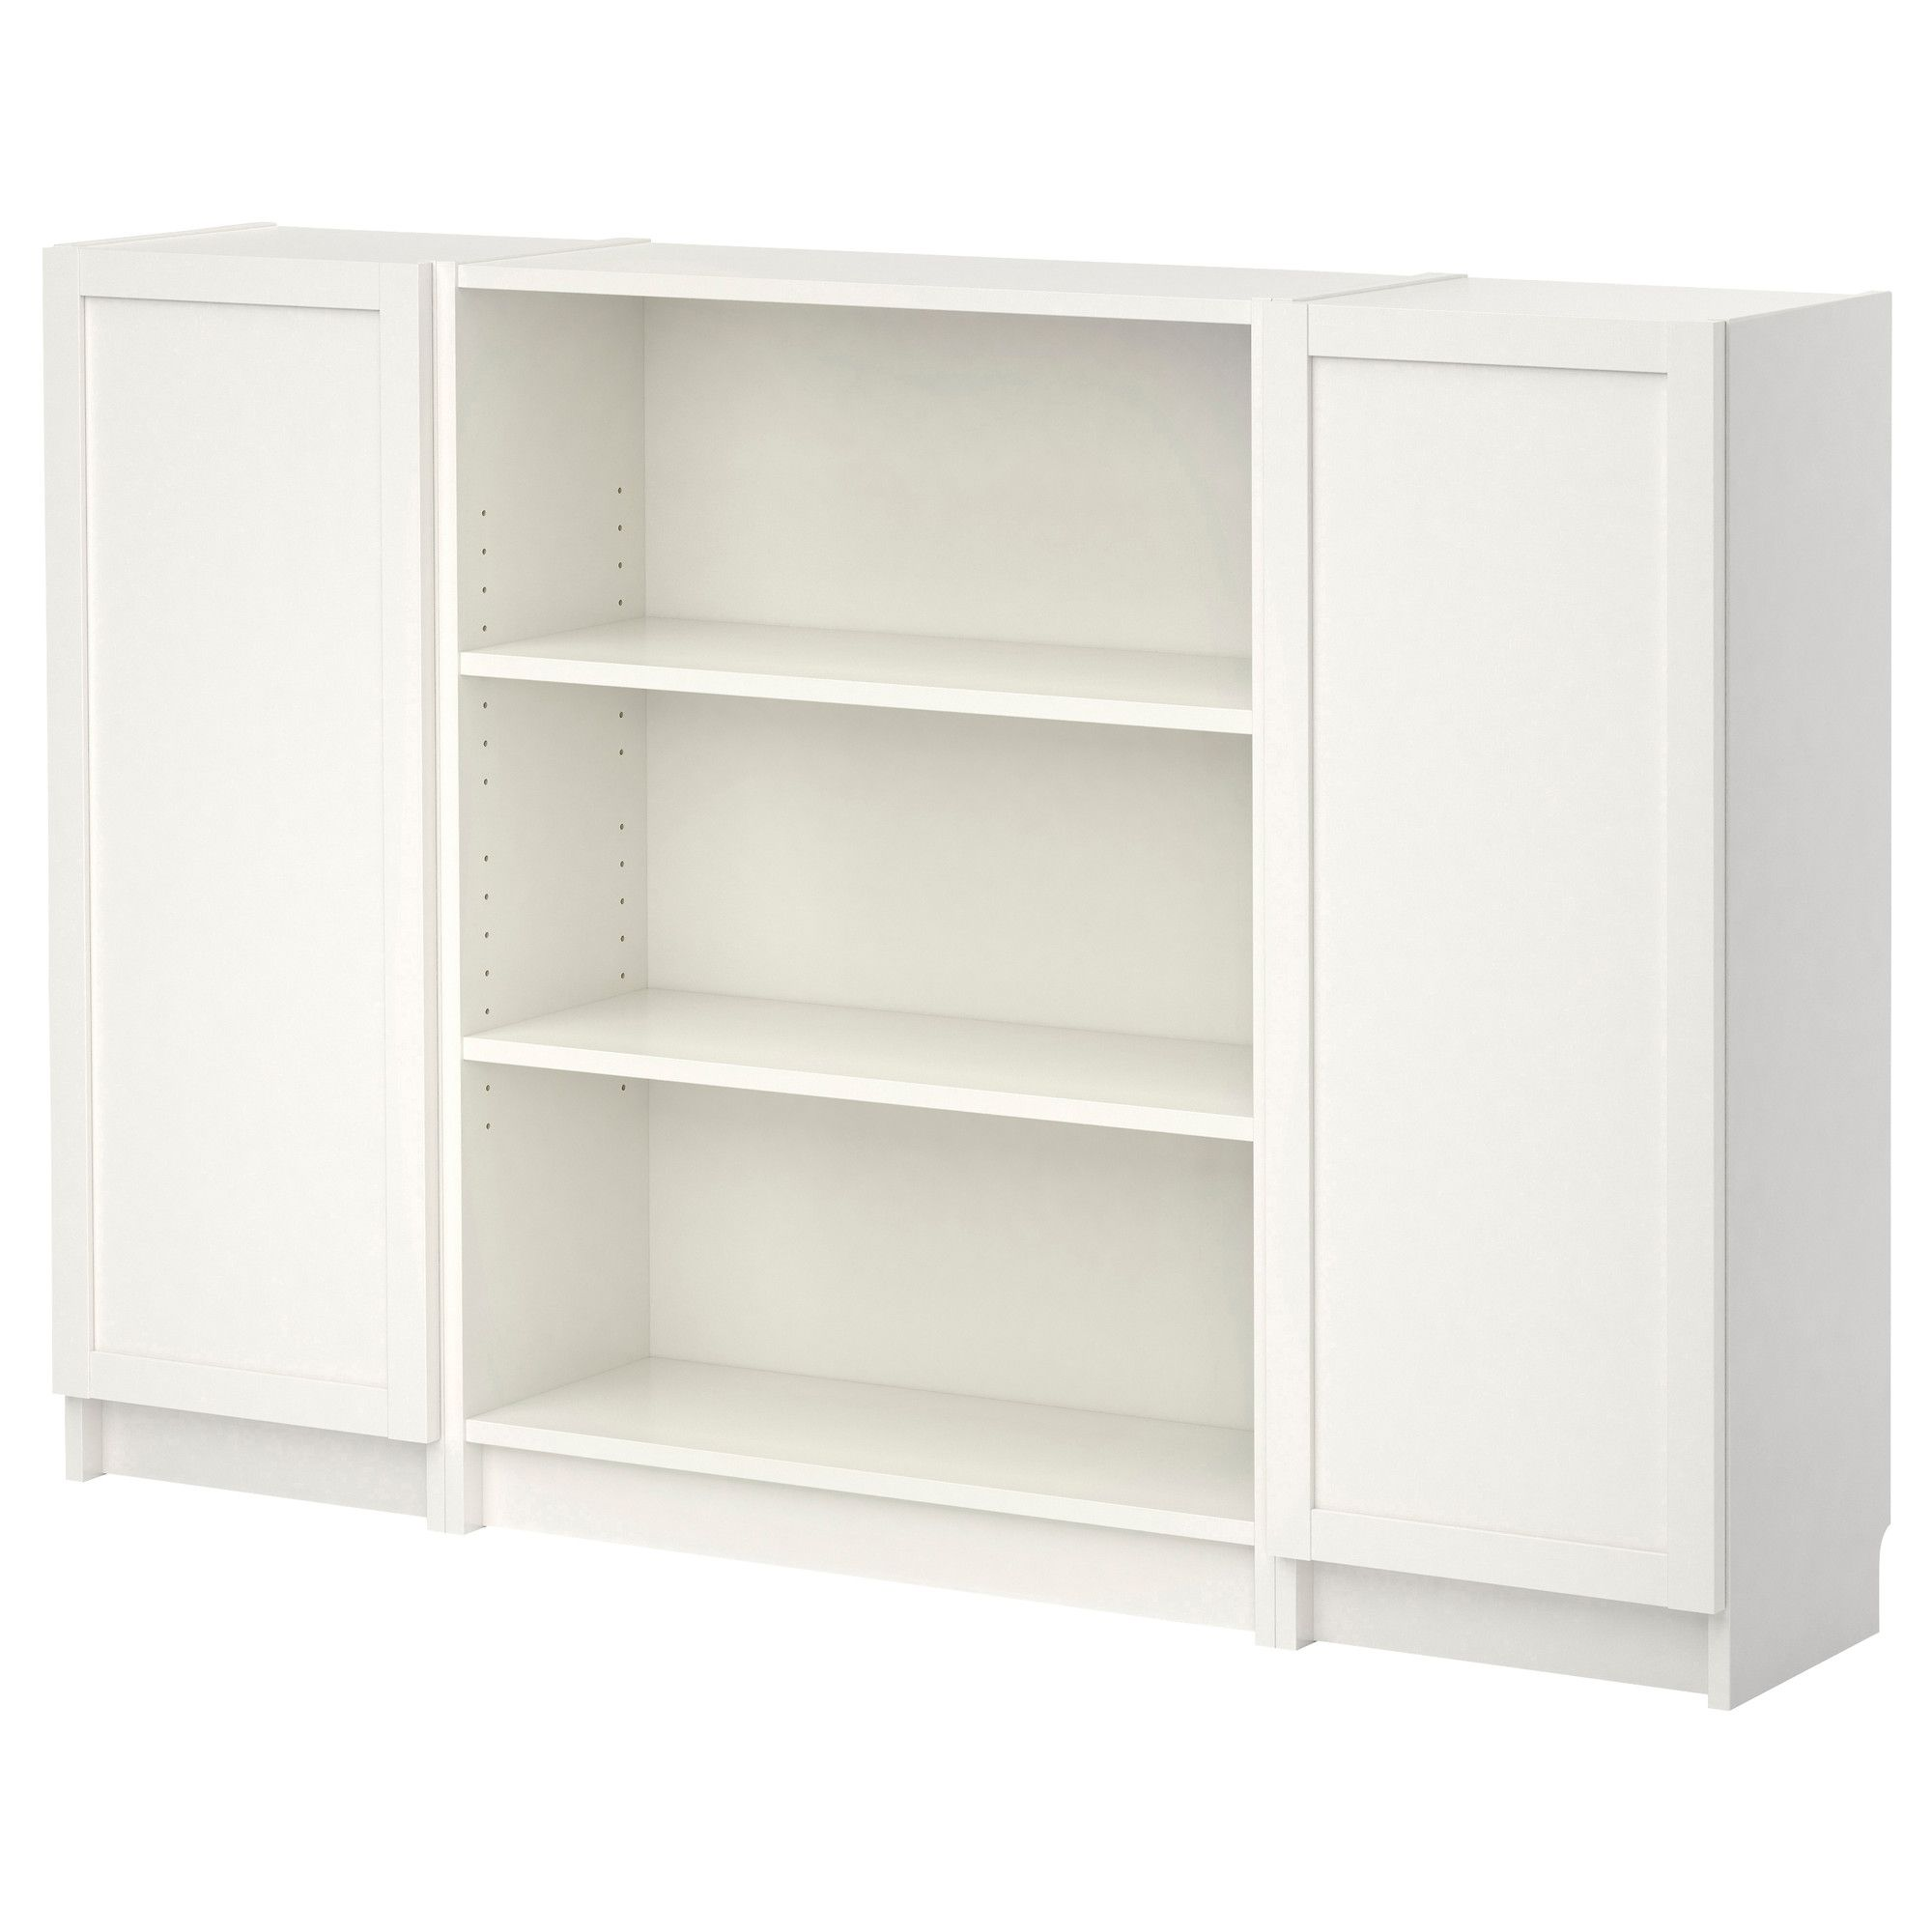 wooden sliding org features glass rectangle commendable handballtunisie white drawers l door with bookshelf